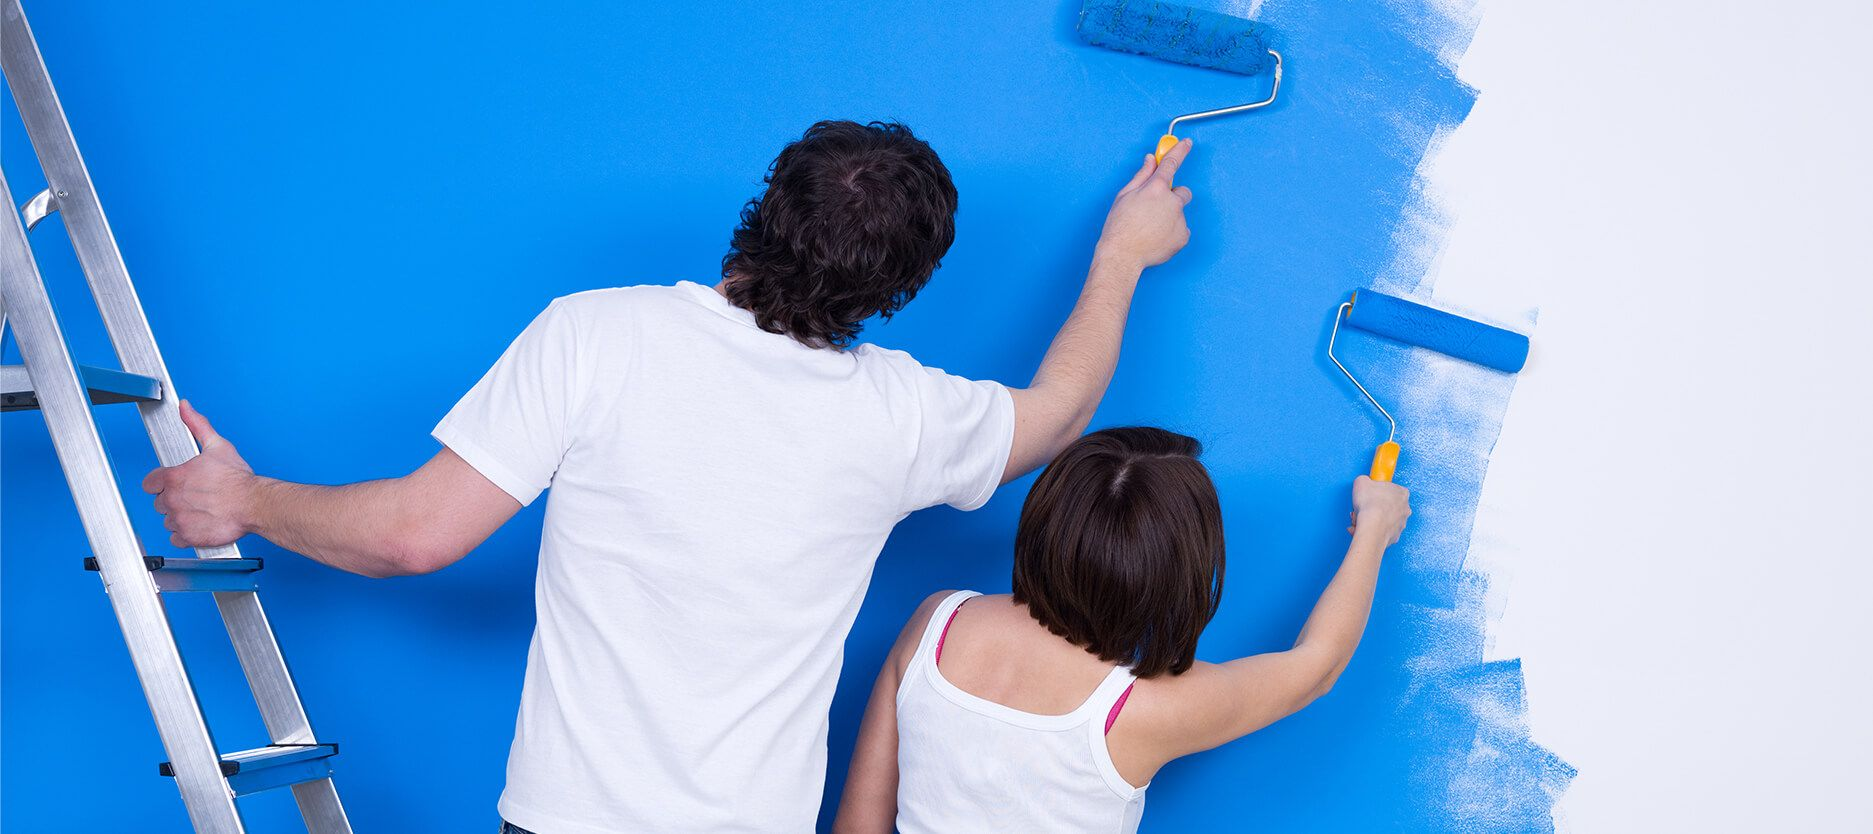 How to Paint a Wall Yourself with 10 Easy Steps